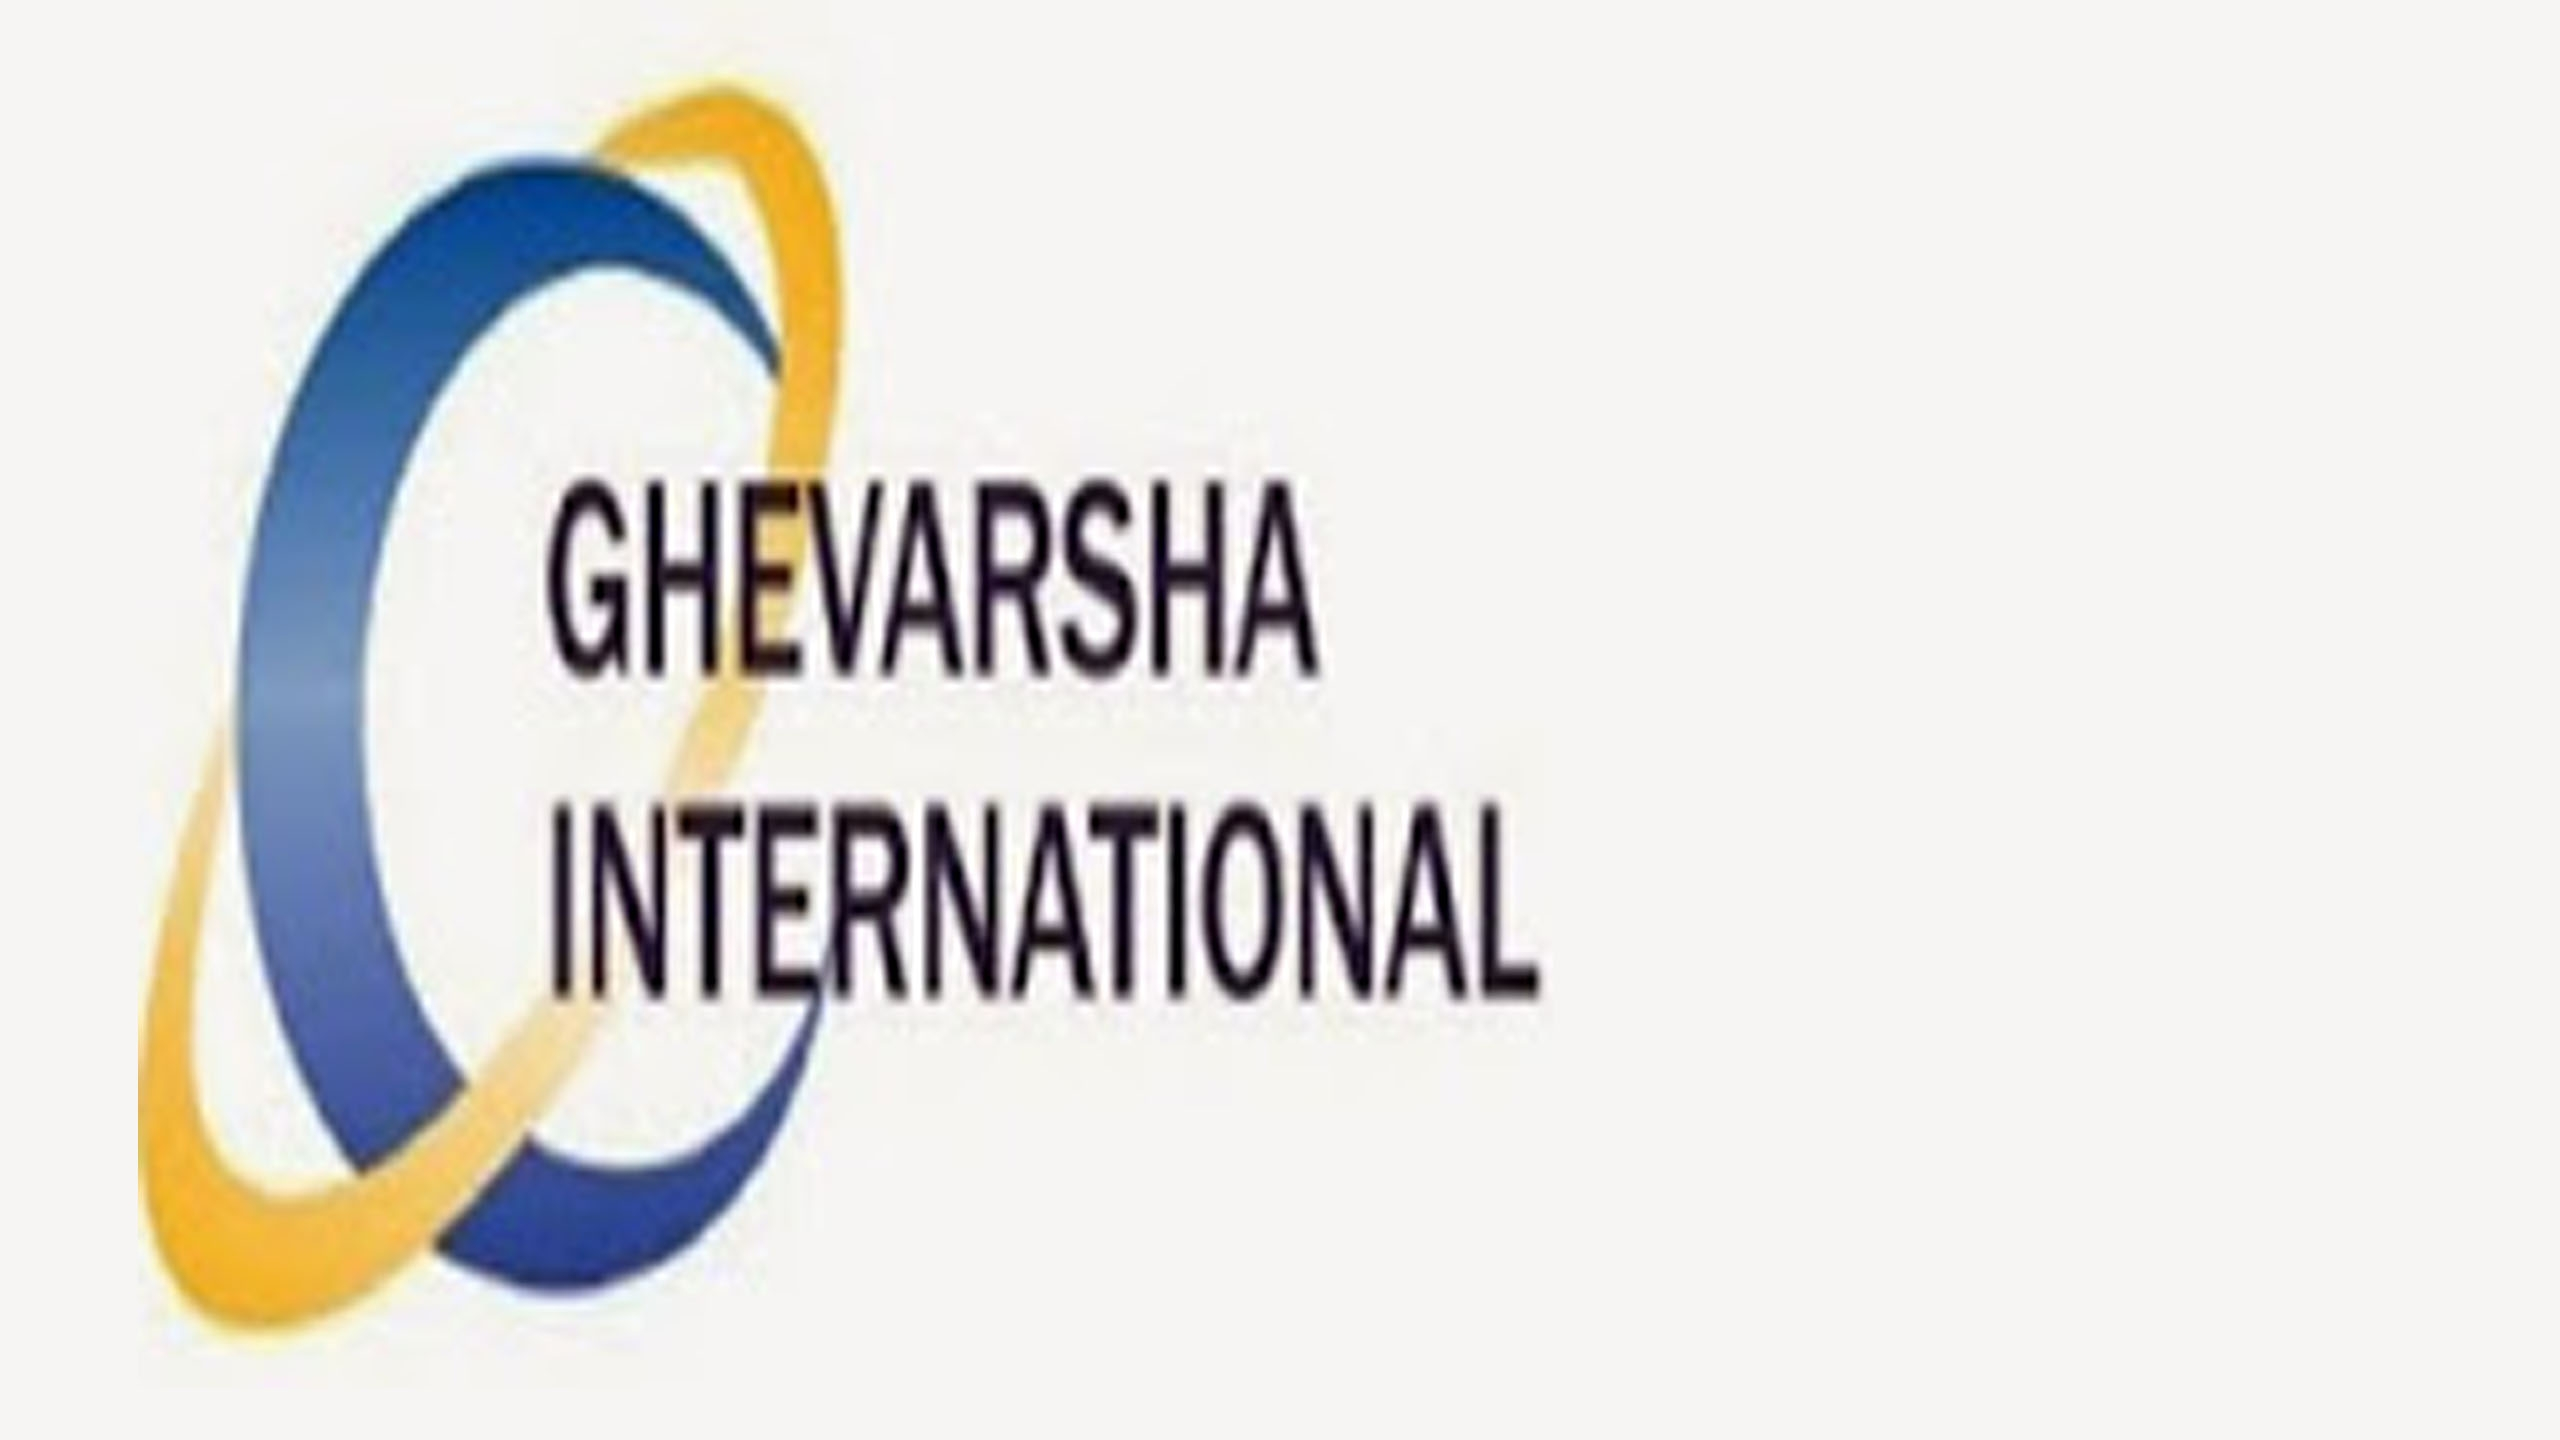 Ghevarsha International Tastylia Oral Strips (@ghevarshainternational) Cover Image